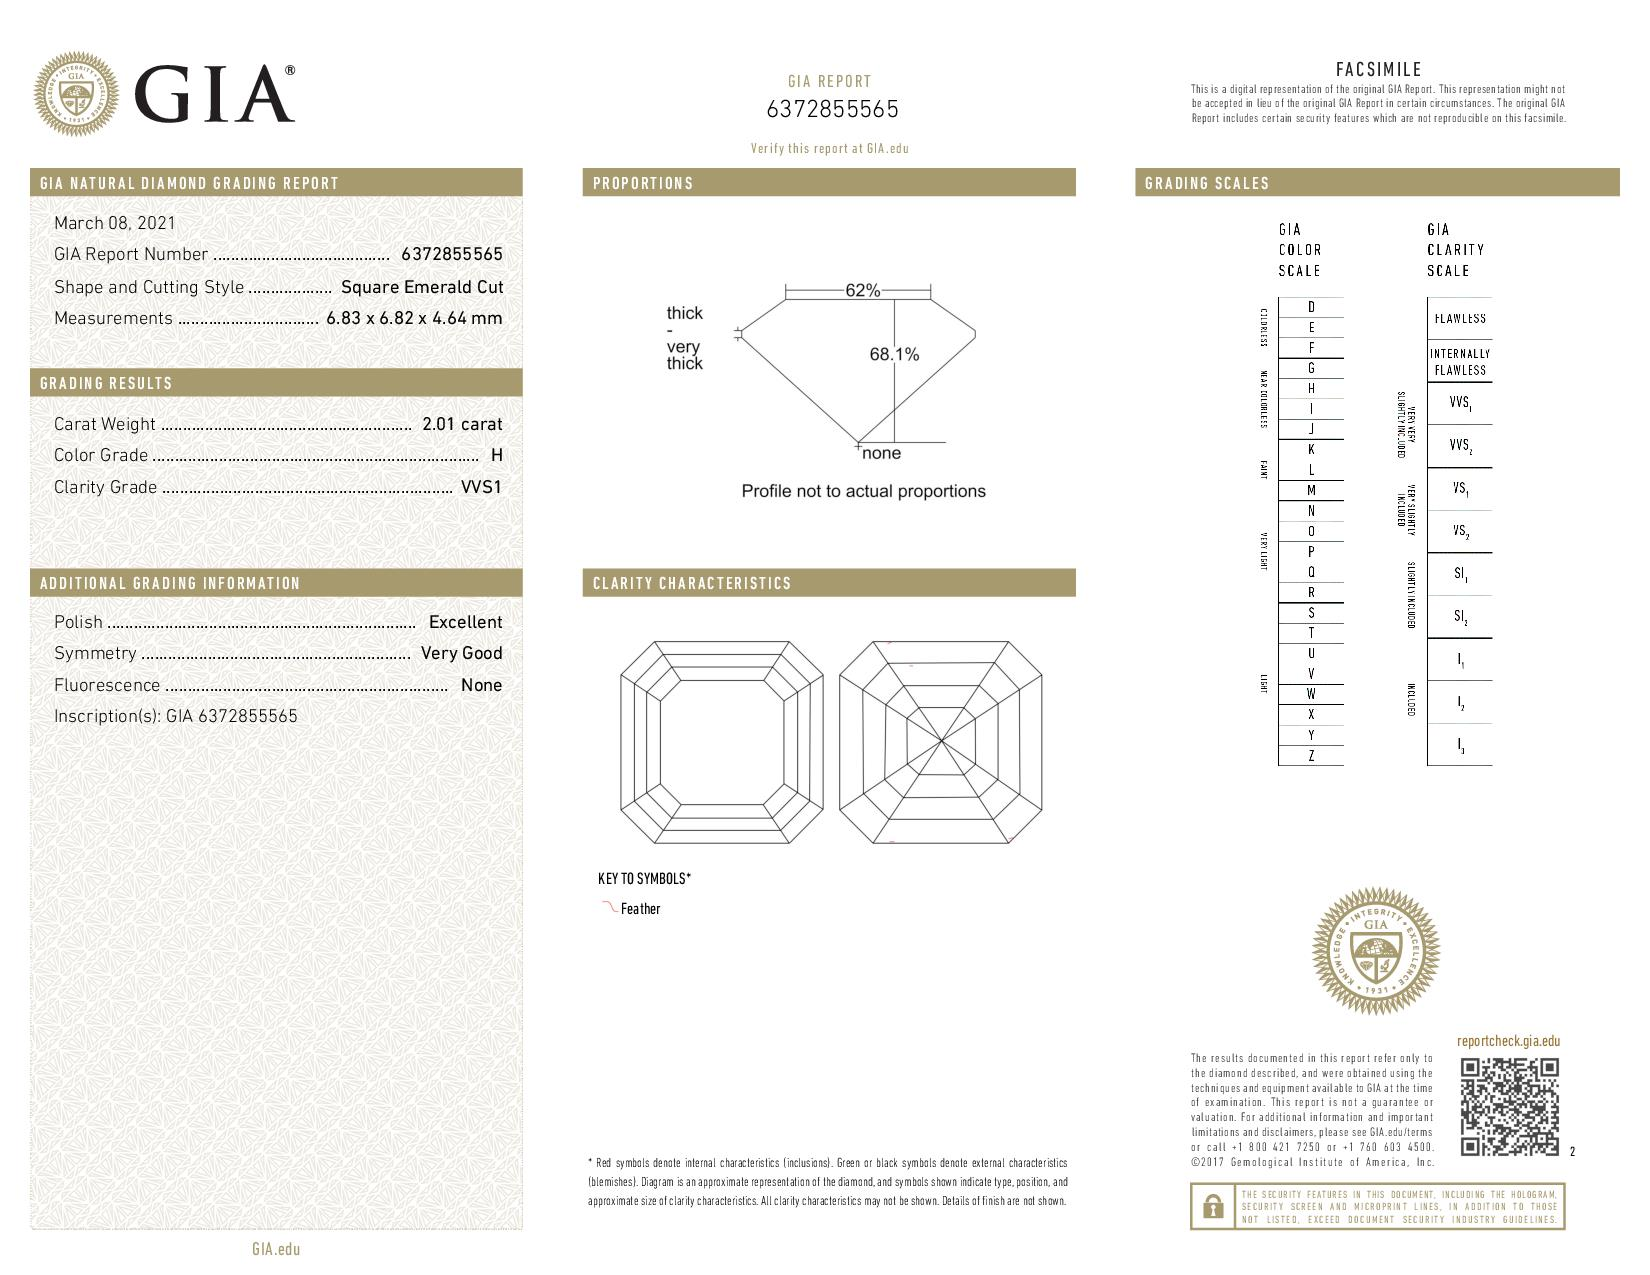 This is a 2.01 carat asscher shape, H color, VVS1 clarity natural diamond accompanied by a GIA grading report.